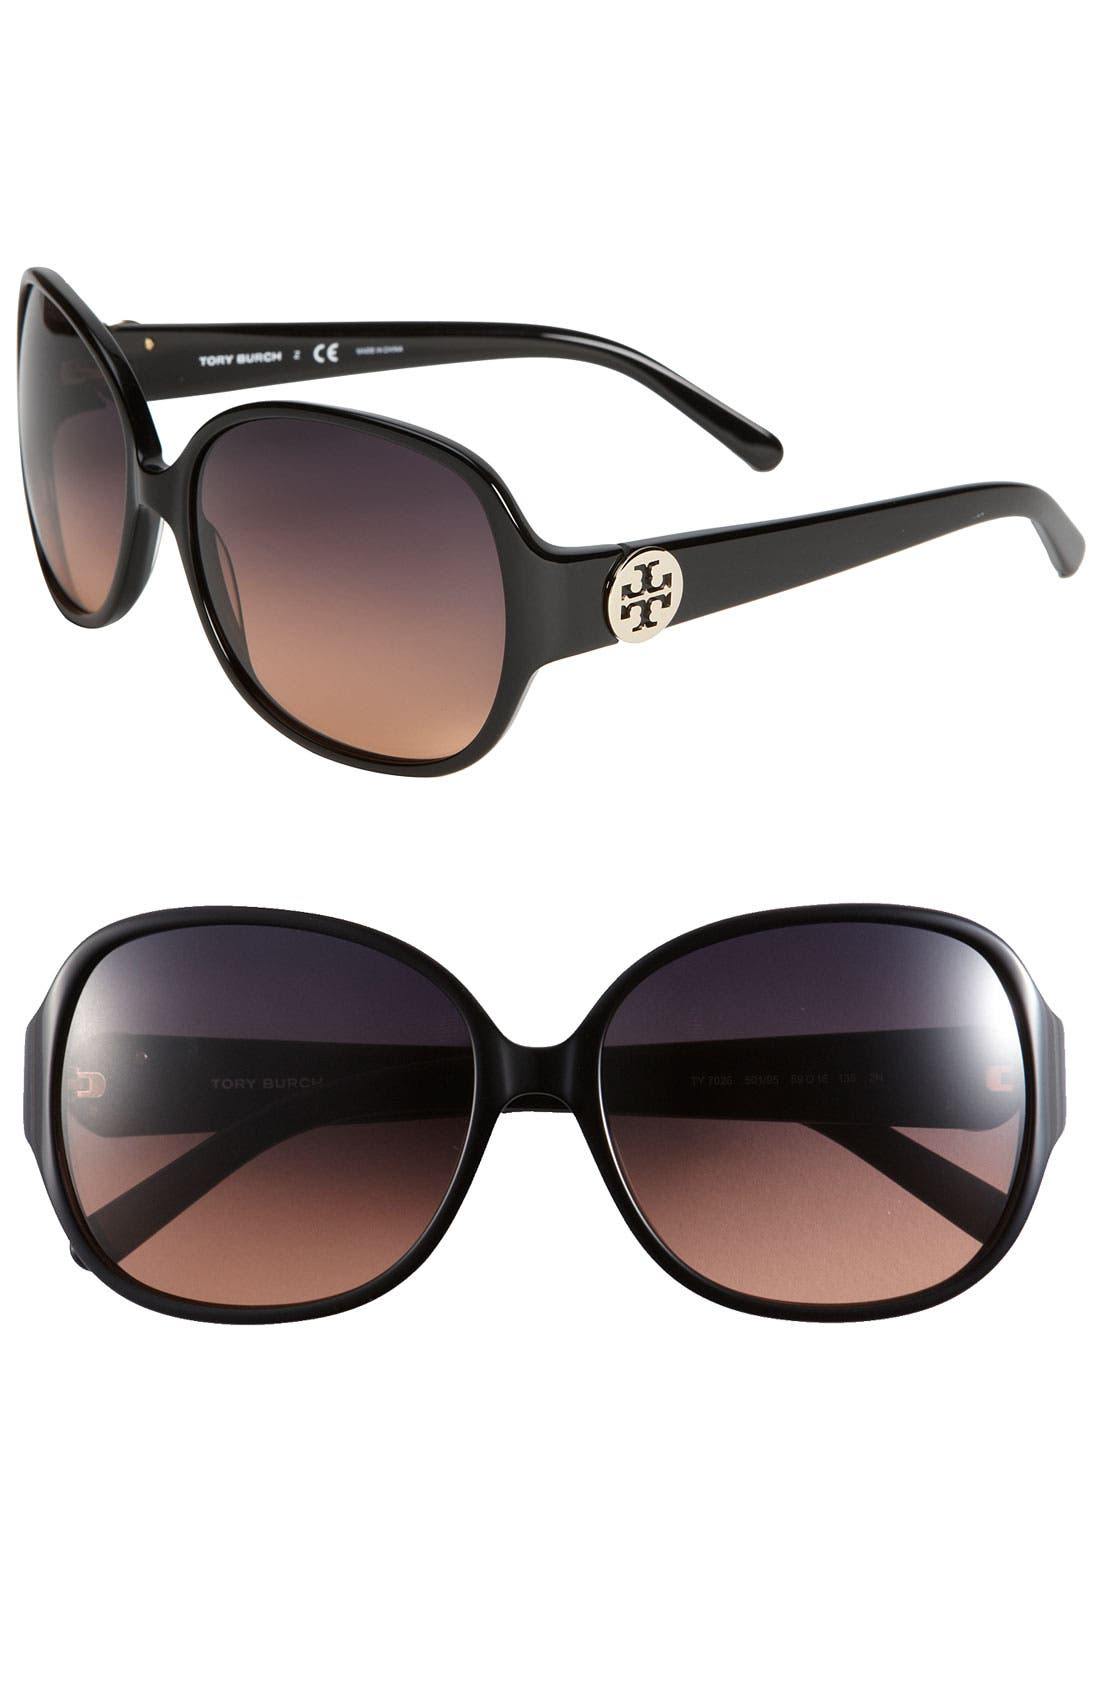 Main Image - Tory Burch 59mm 'Disco Logo' Rounded Sunglasses